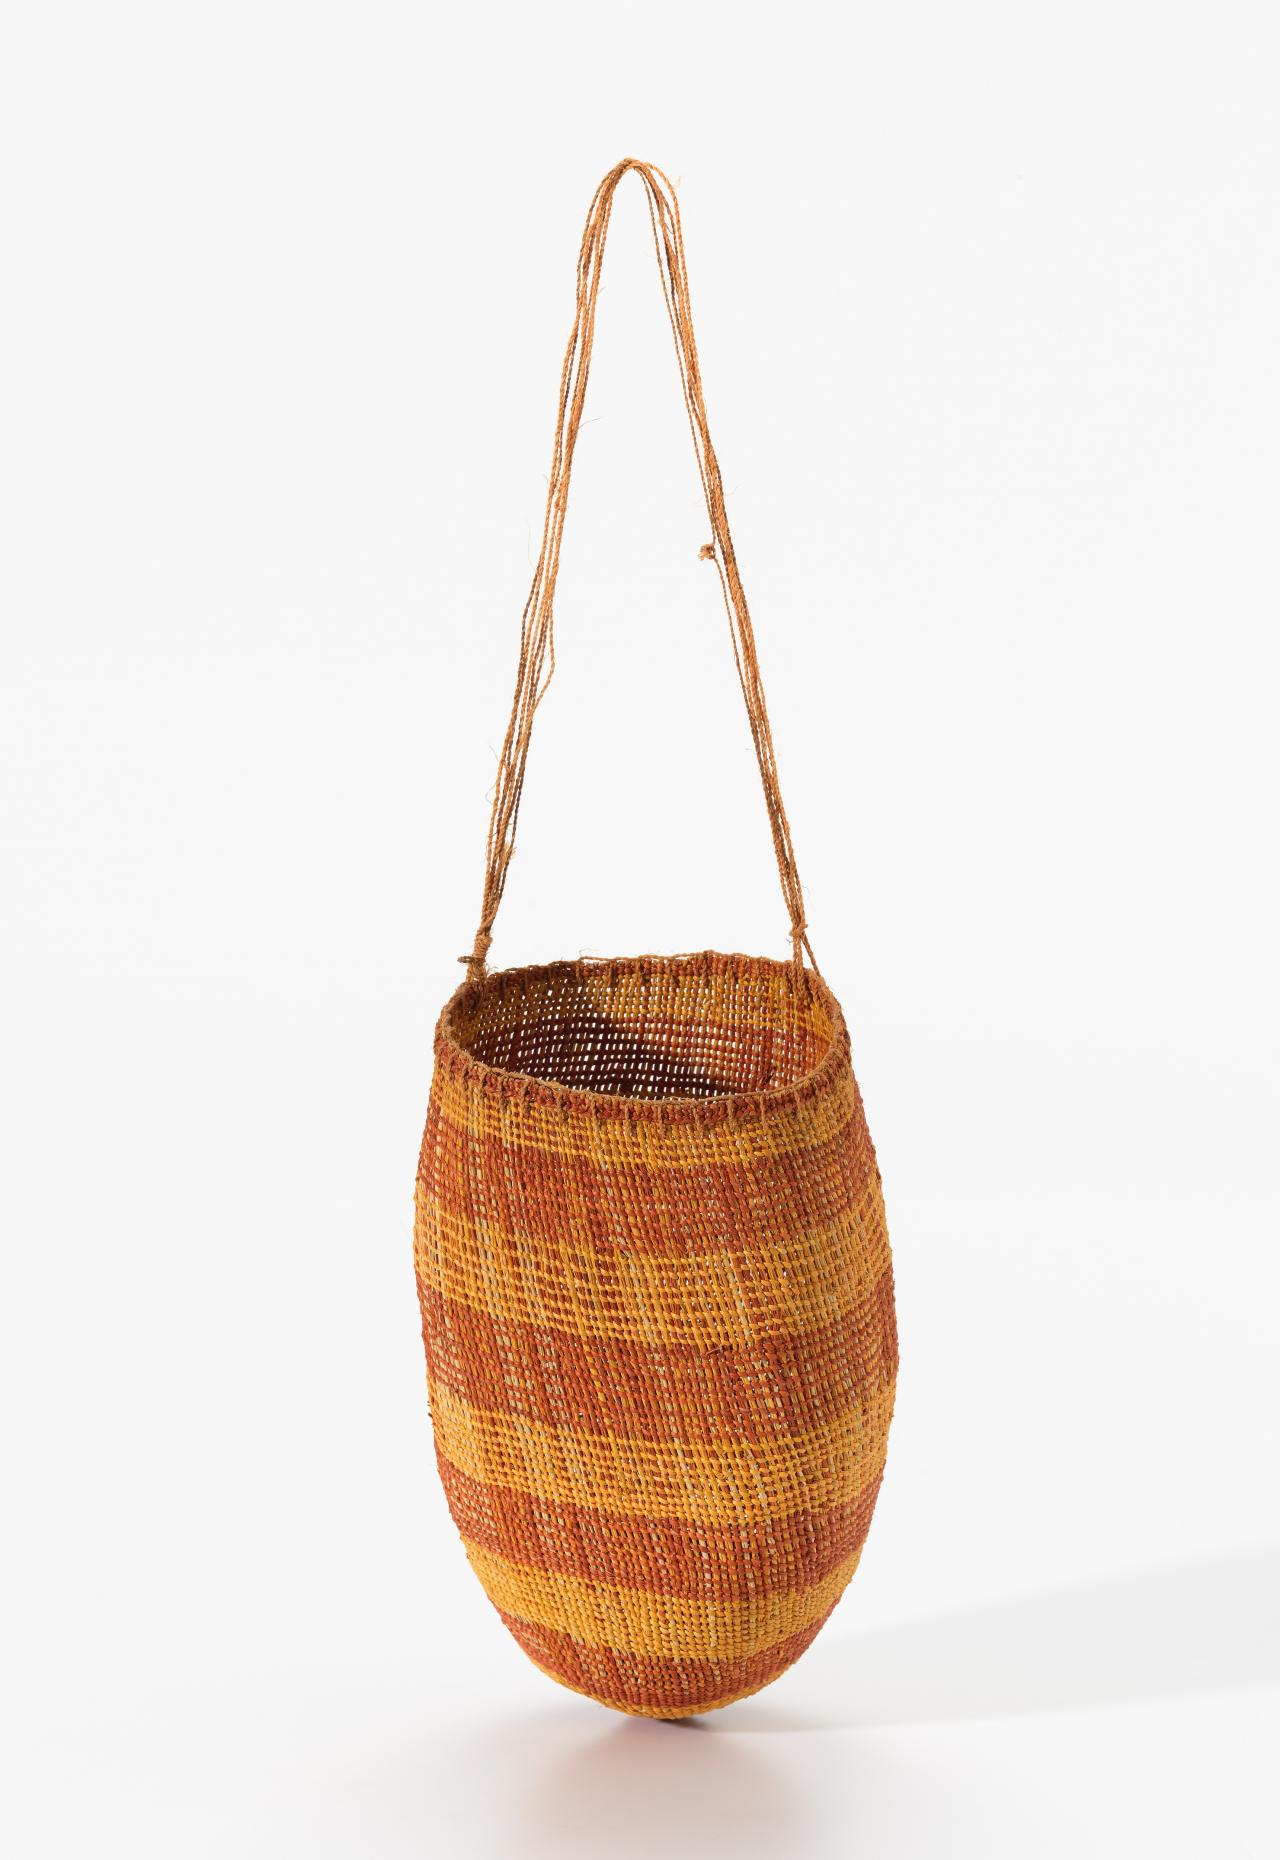 Mendirr (Conical basket)